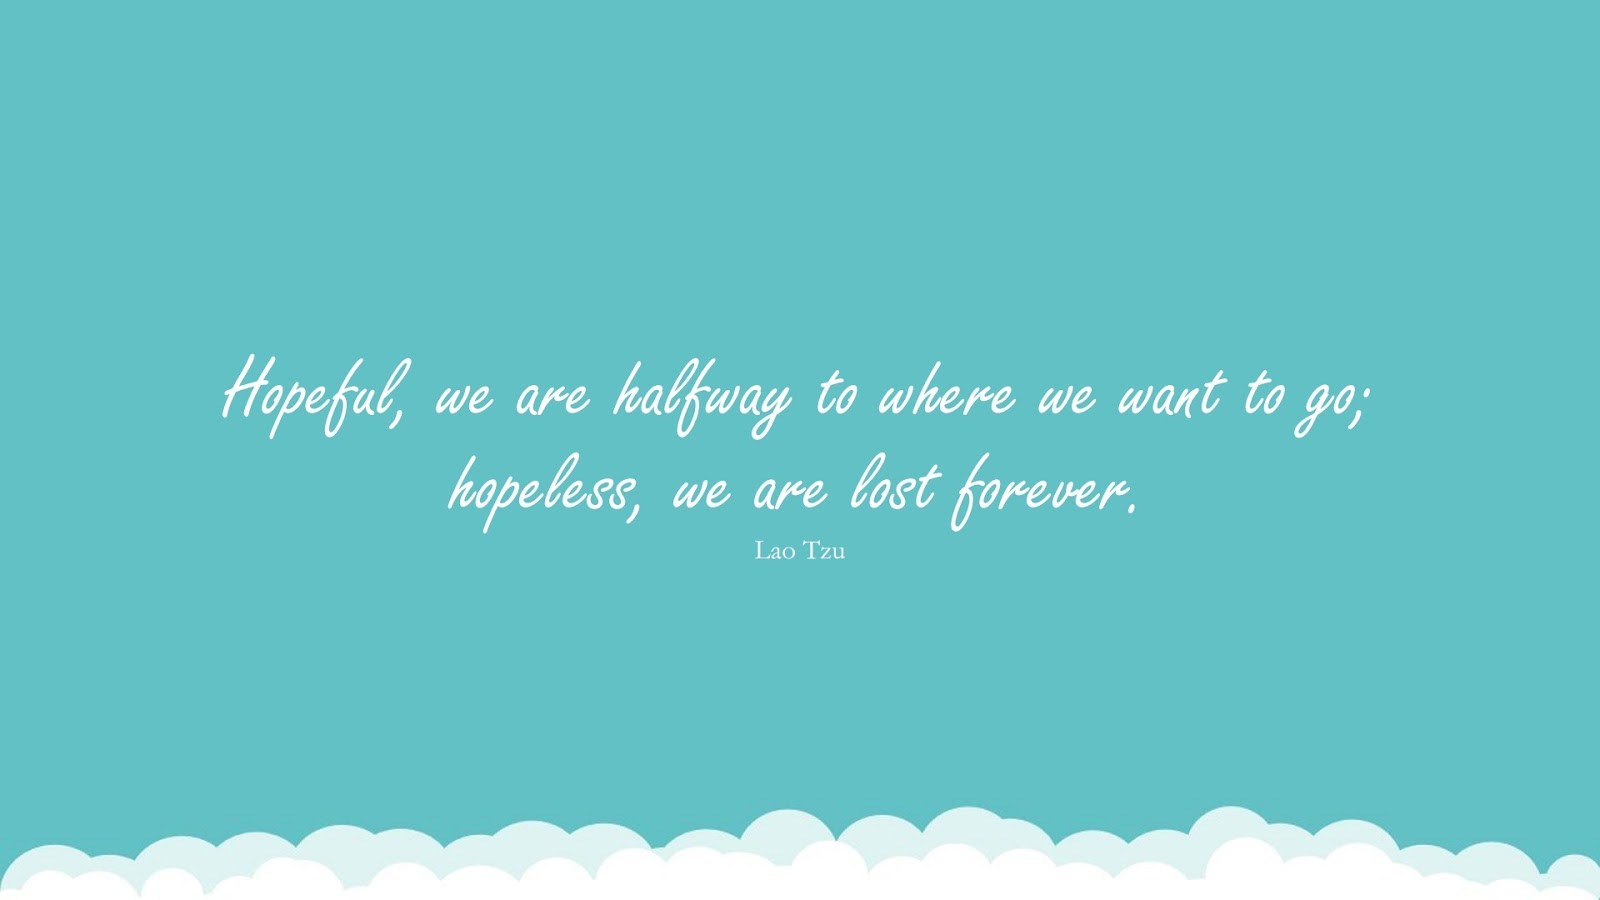 Hopeful, we are halfway to where we want to go; hopeless, we are lost forever. (Lao Tzu);  #HopeQuotes